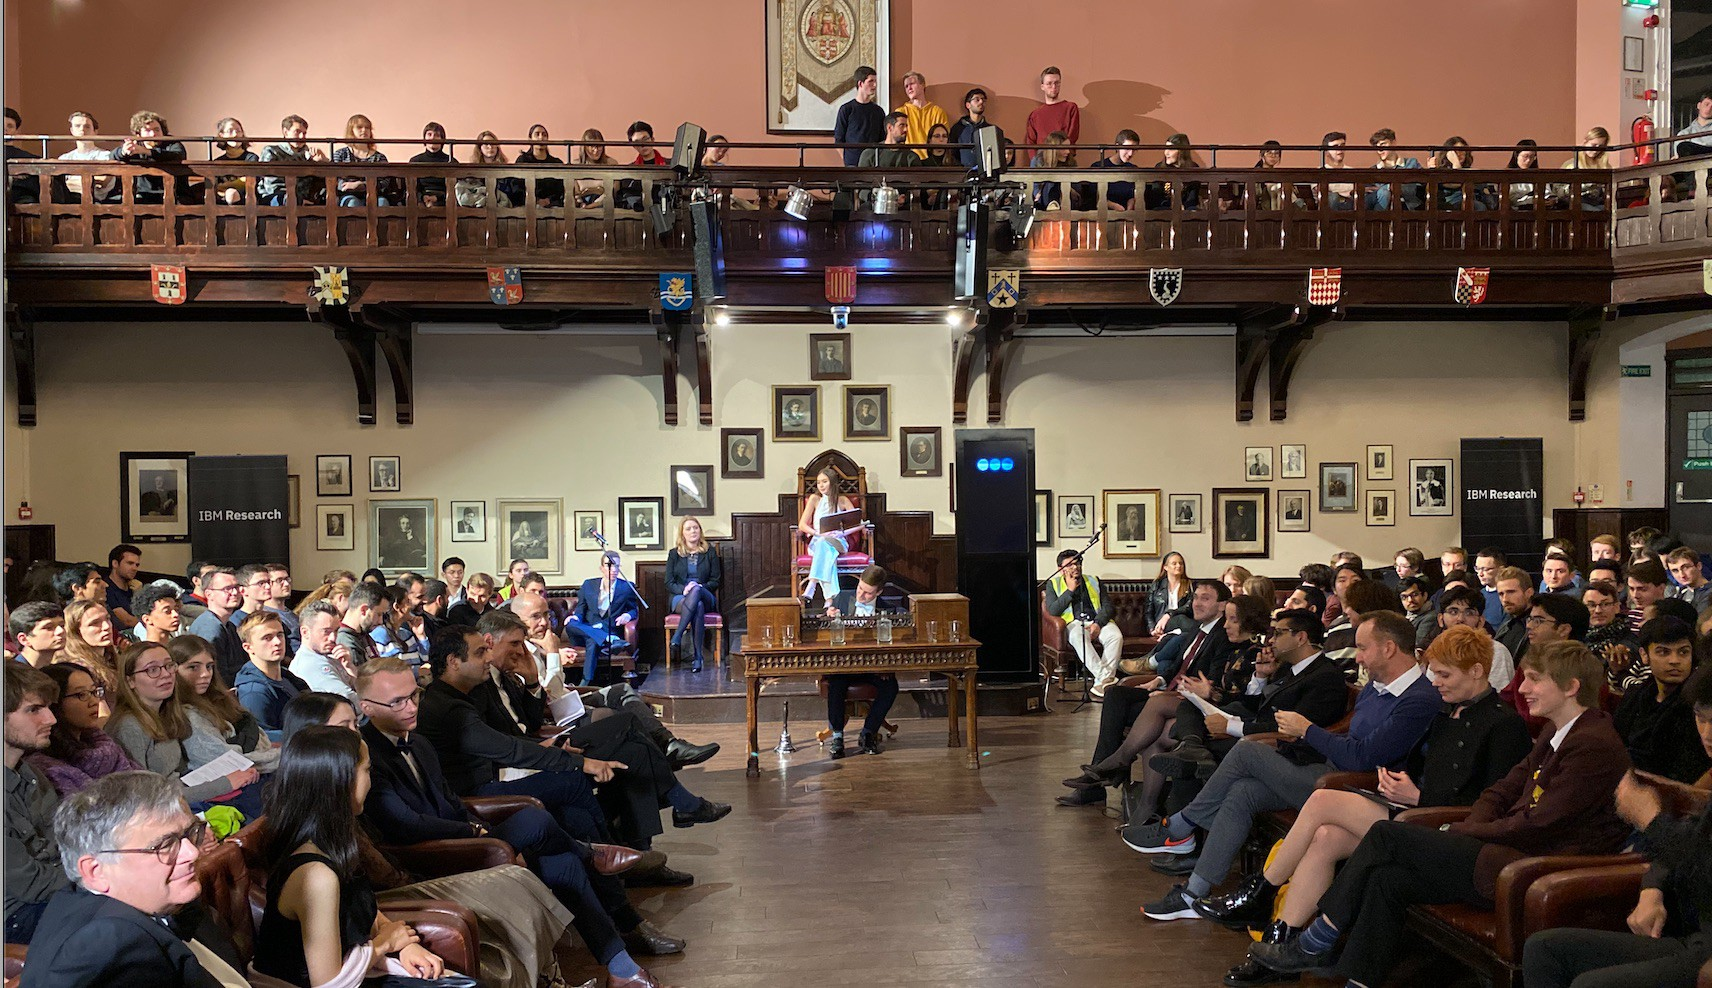 Project Debater at the Cambridge Union Society.